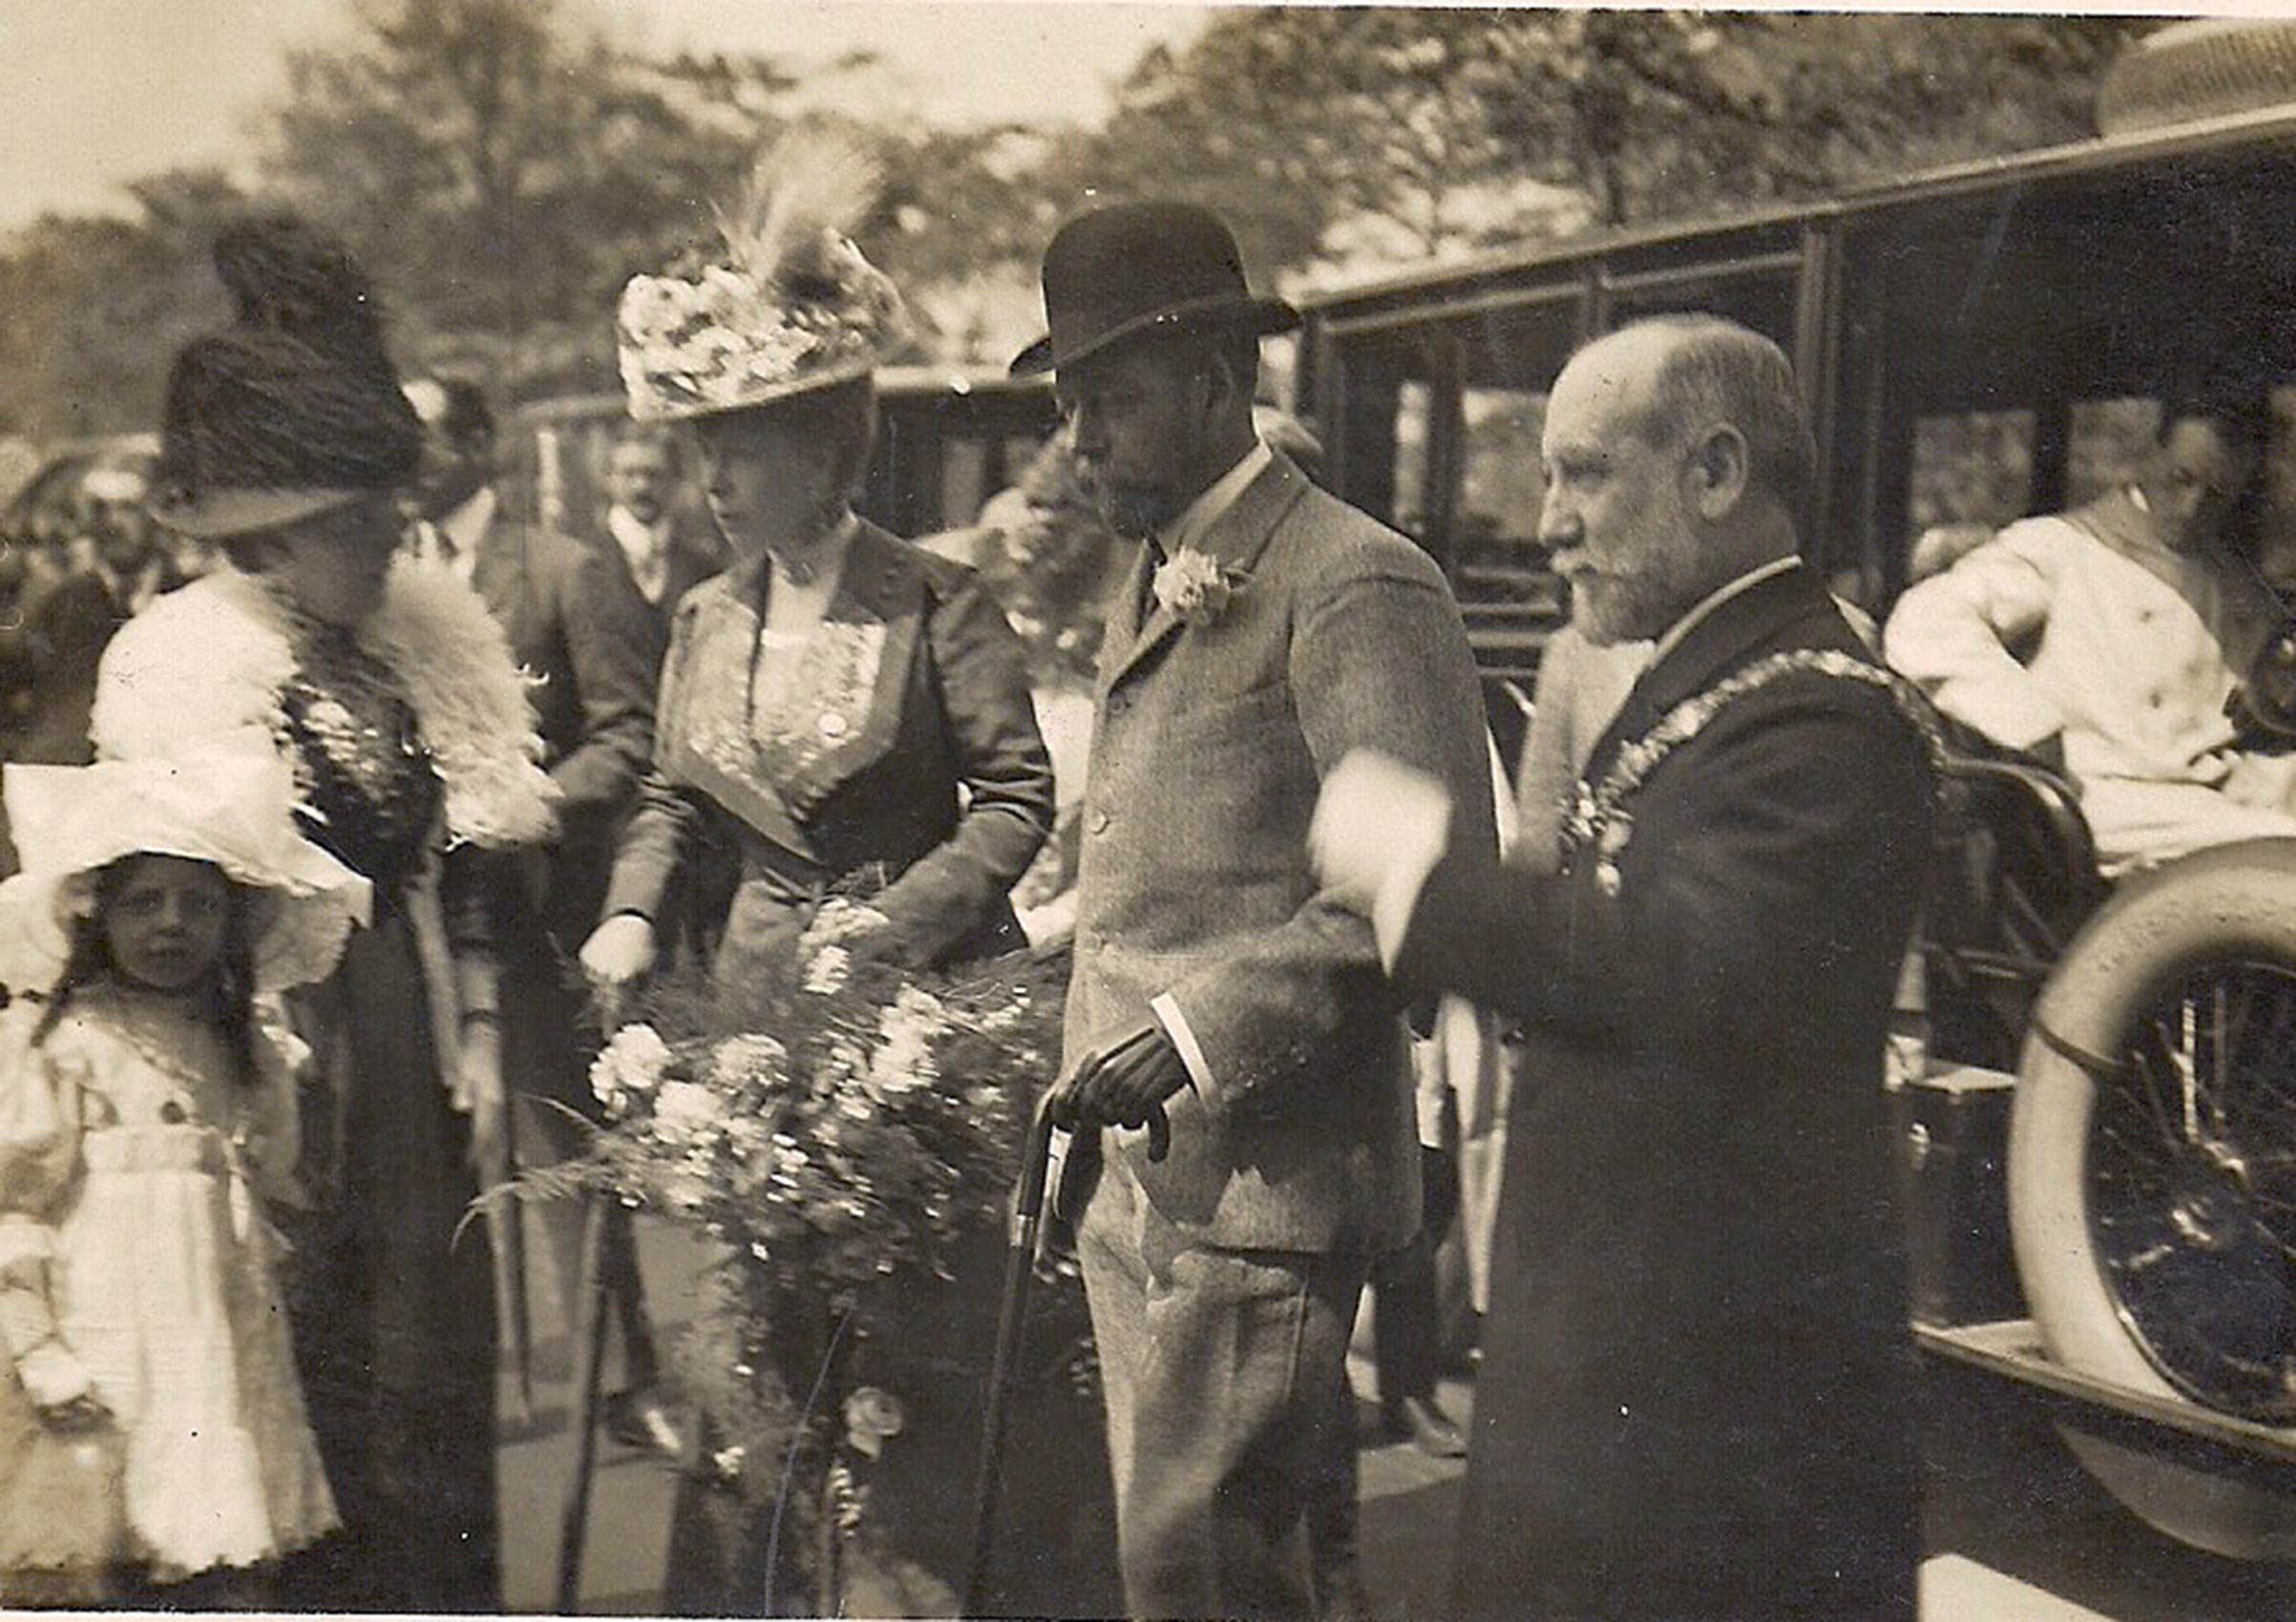 Queen Mary and King George V (both in the center) are flanked by the Mayor of Rotherham Alderman P Bancroft Coward (far right) and his wife during their July 8-12, 1912, visit.